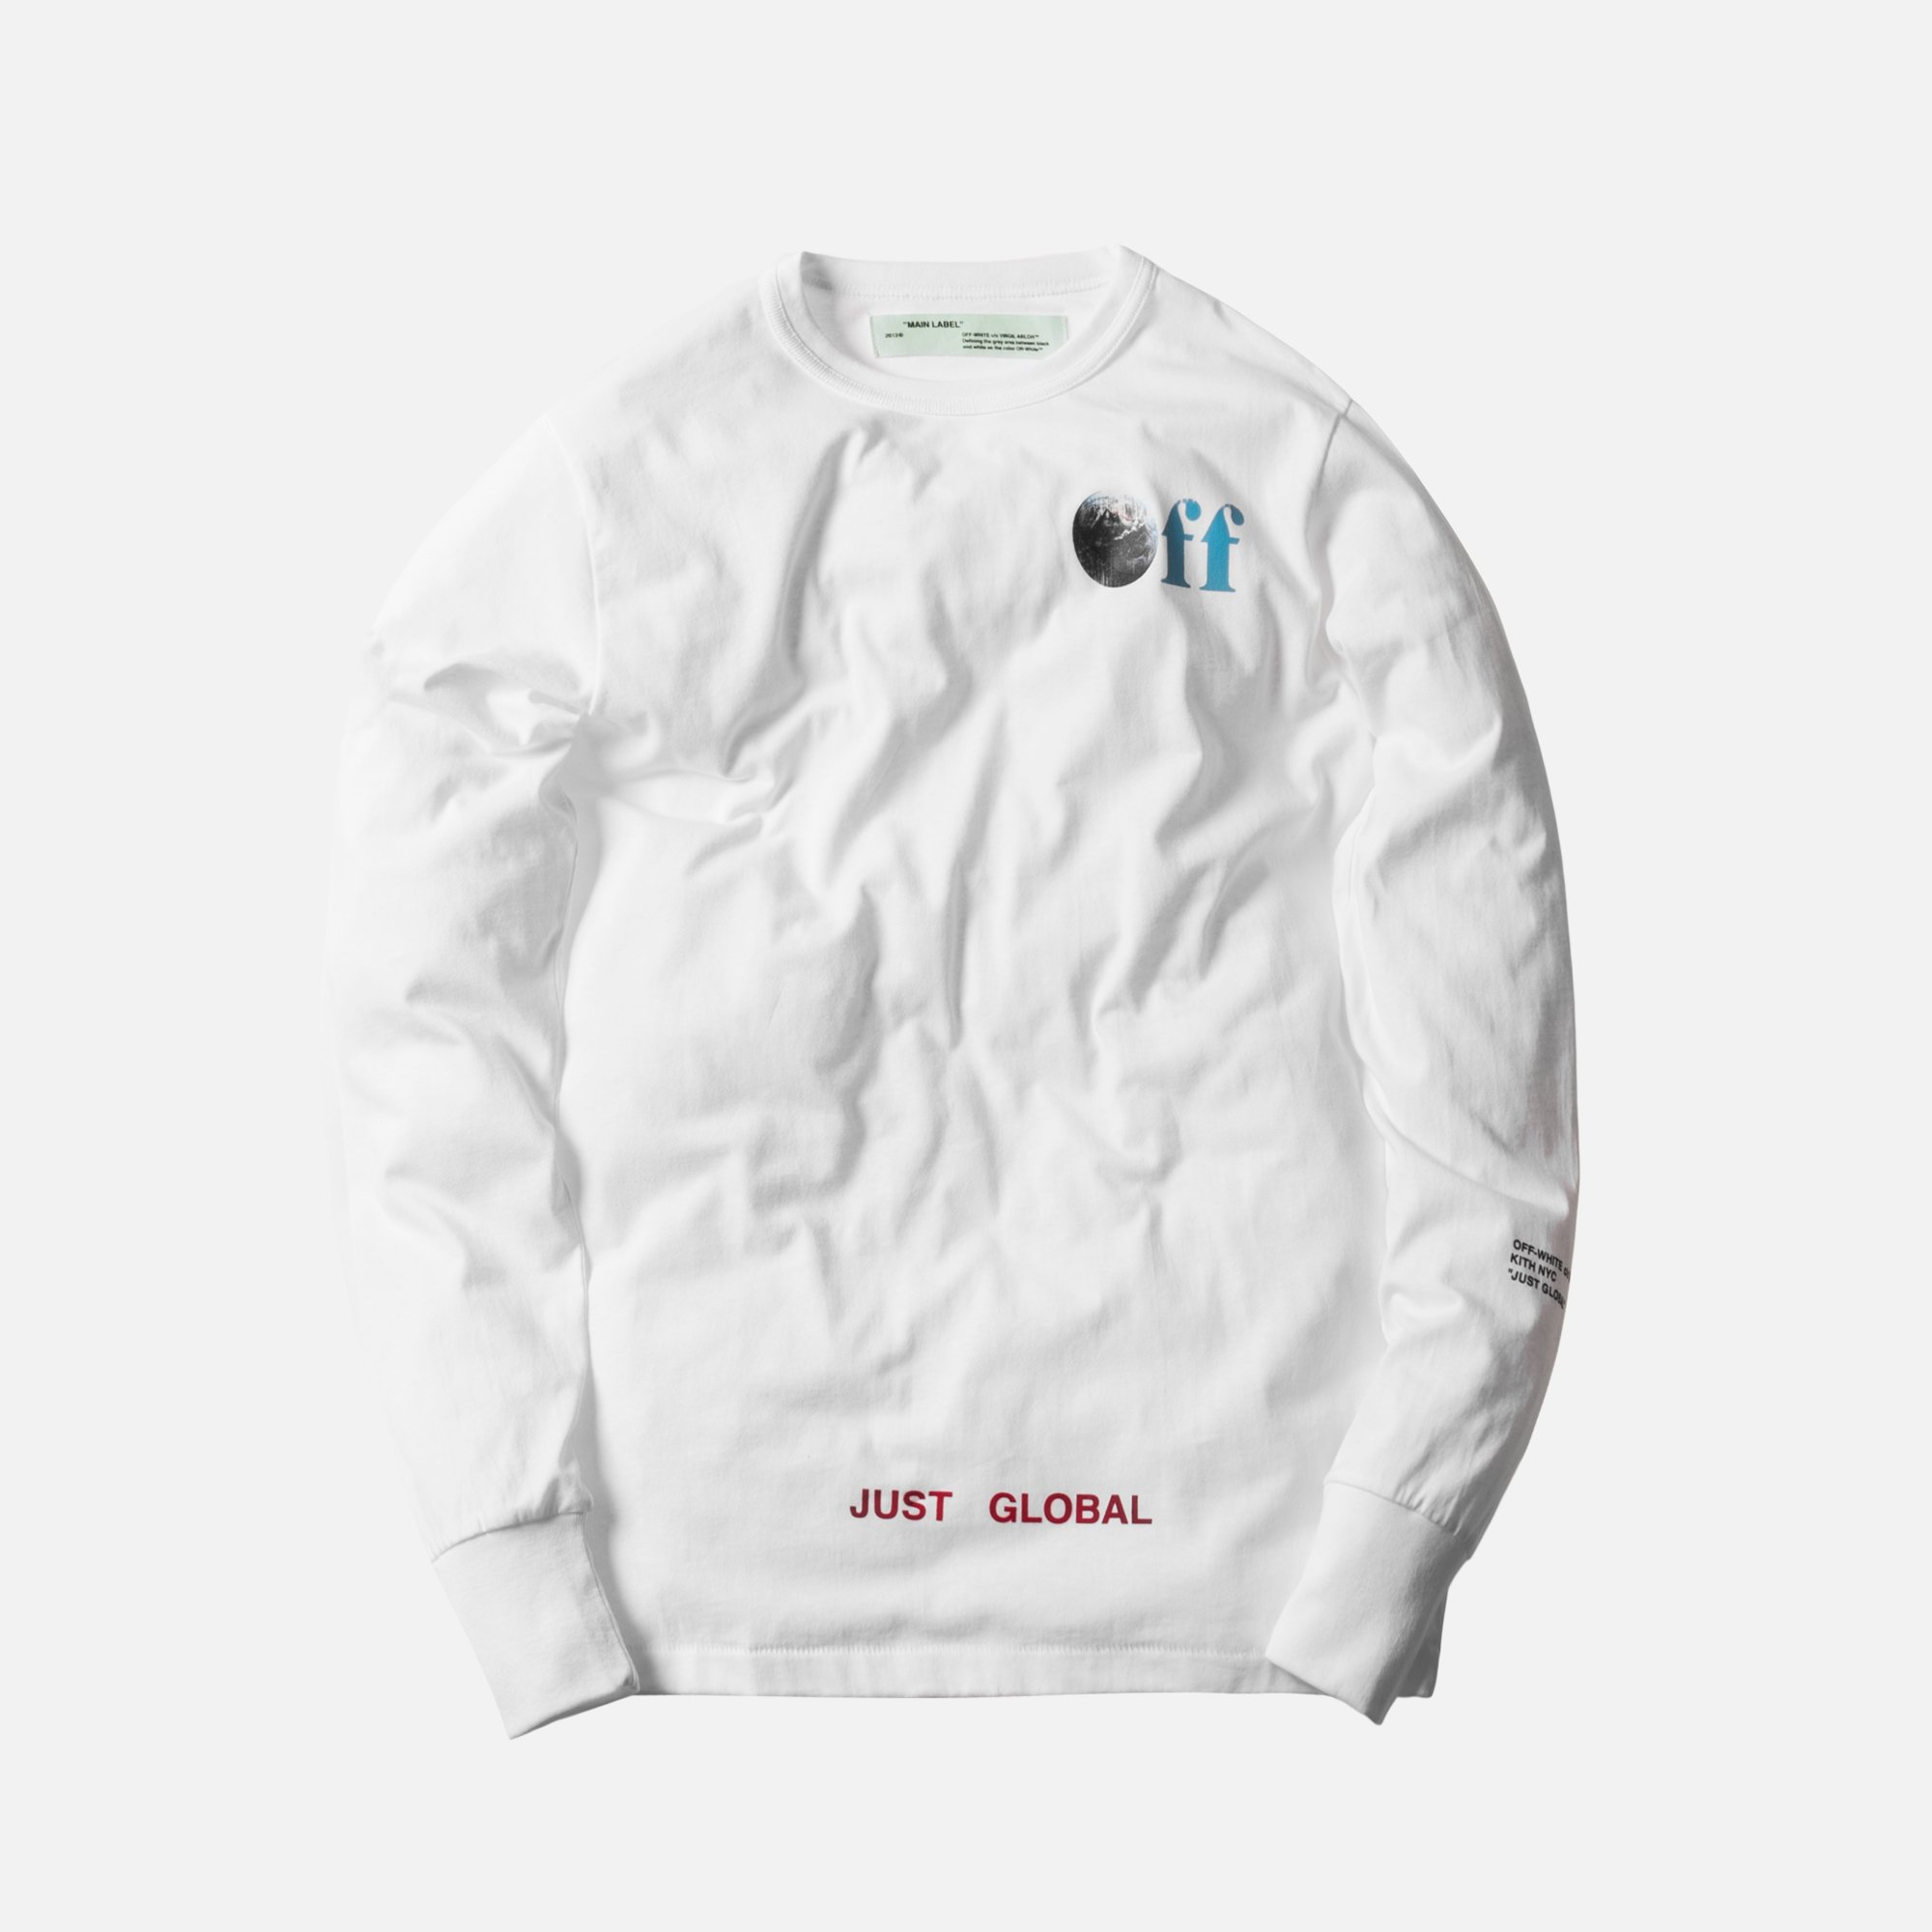 086423422f9e Off-White Kith x Off-White Just Global L S Tee Size xl - Long Sleeve ...